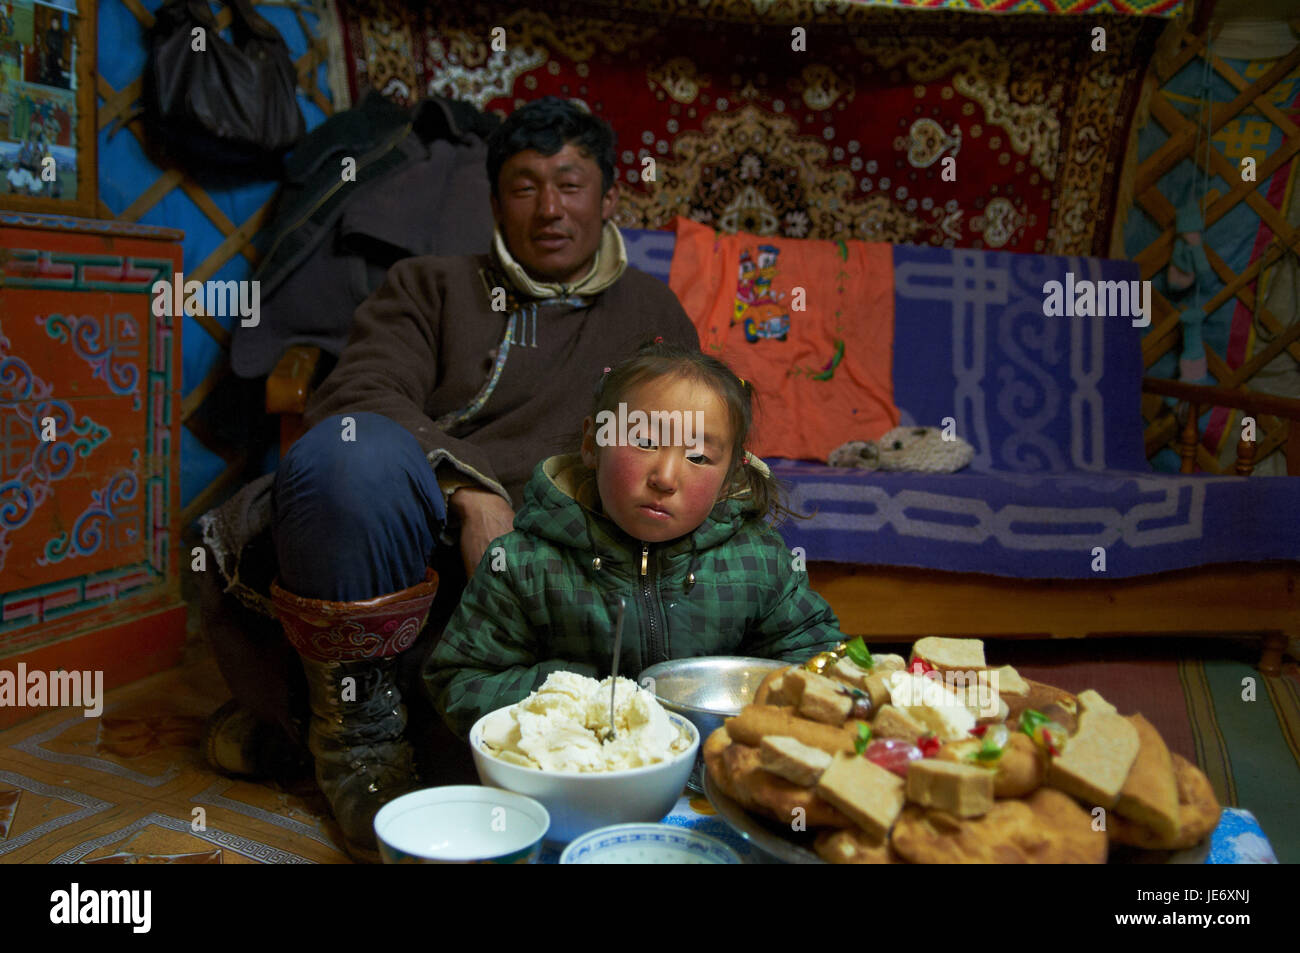 Mongolia, Khovd province, winter, Jurte, inside, nomads, young man with son, - Stock Image